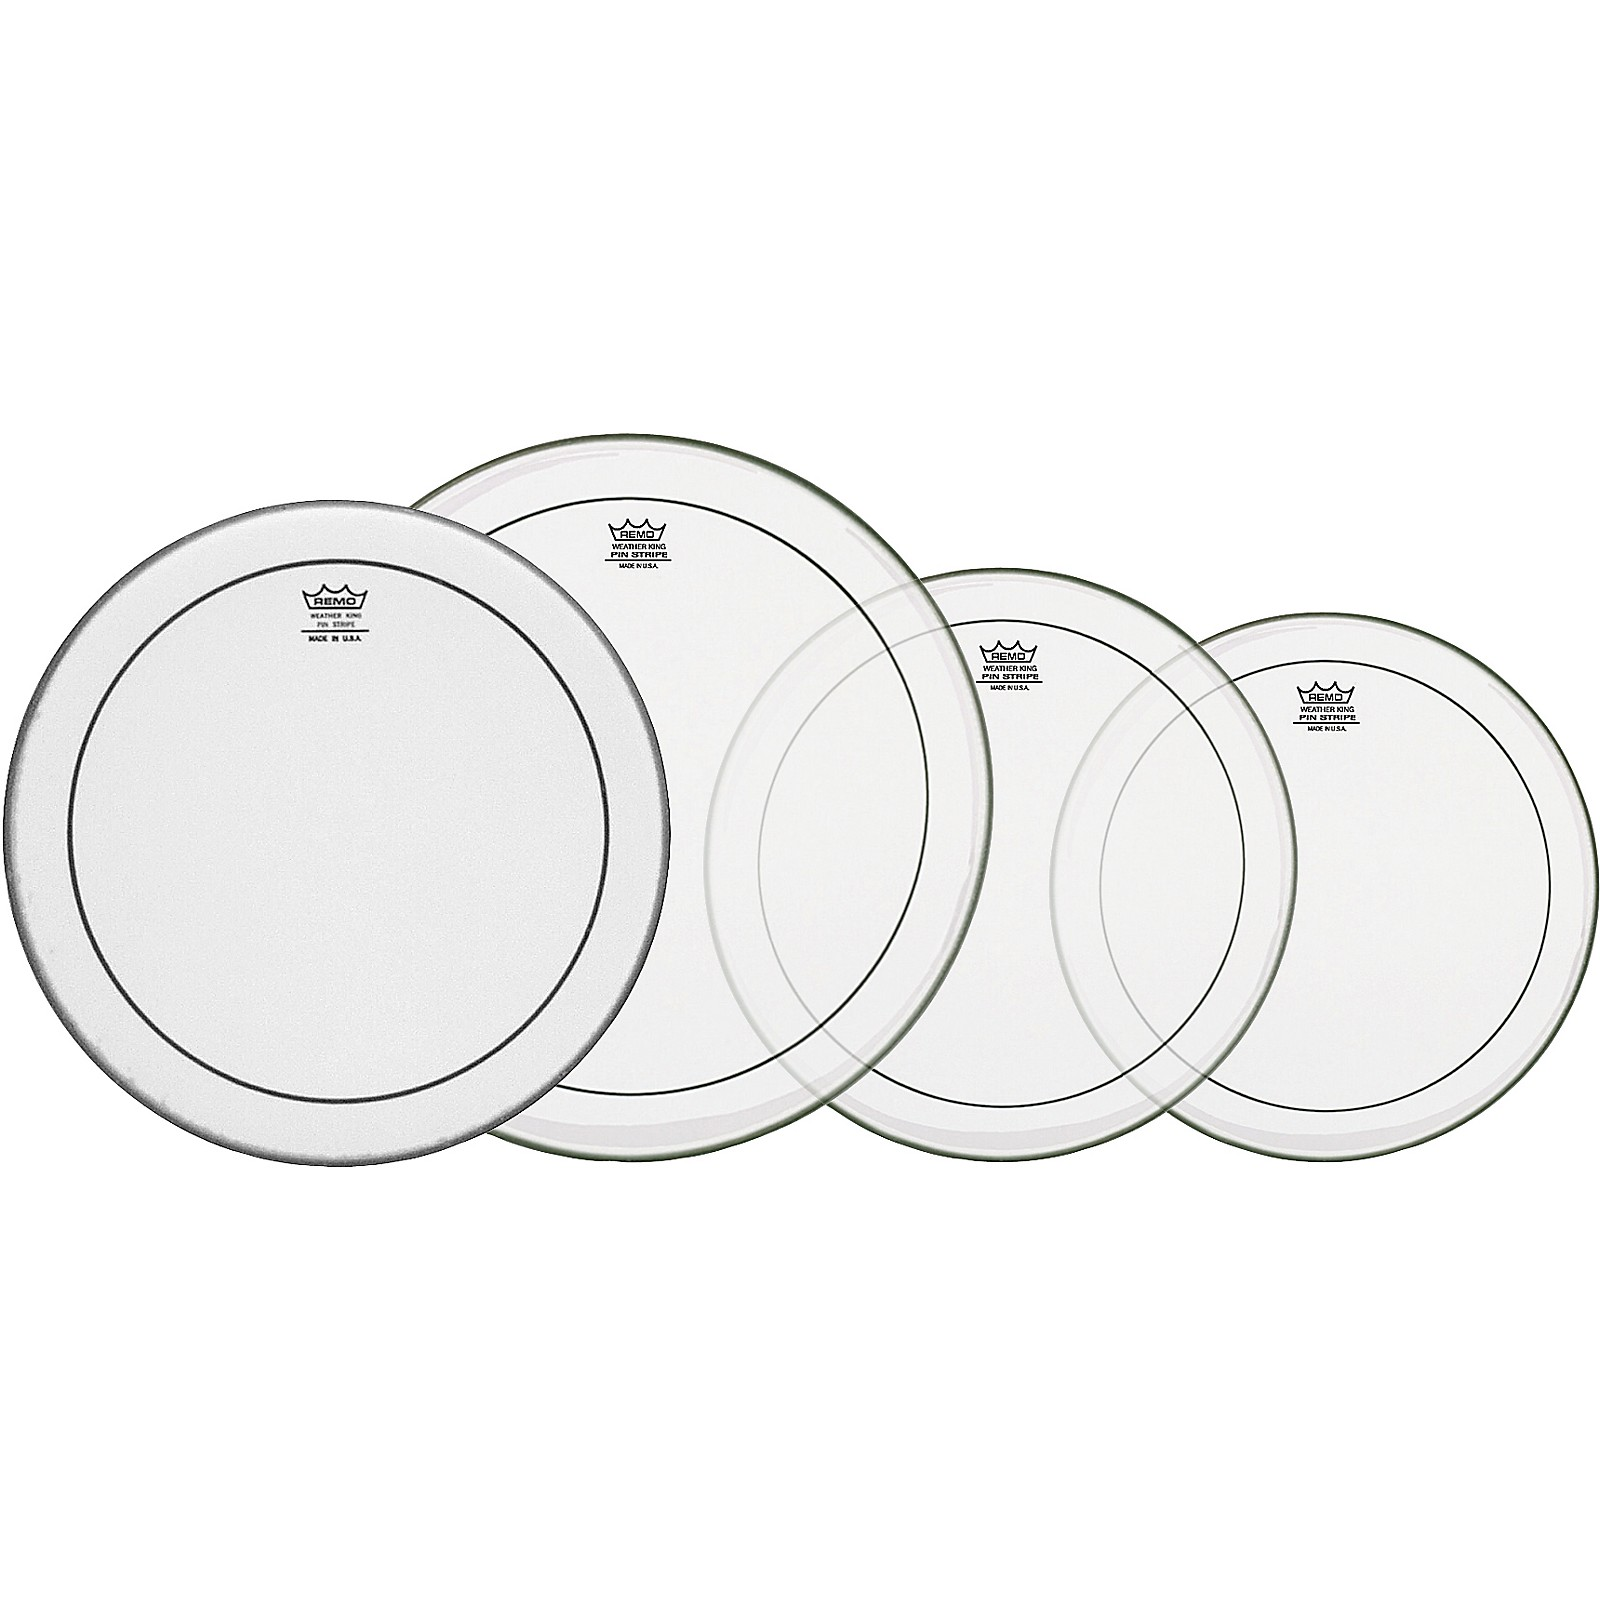 Remo Pinstripe Standard Drumhead Propack with 14